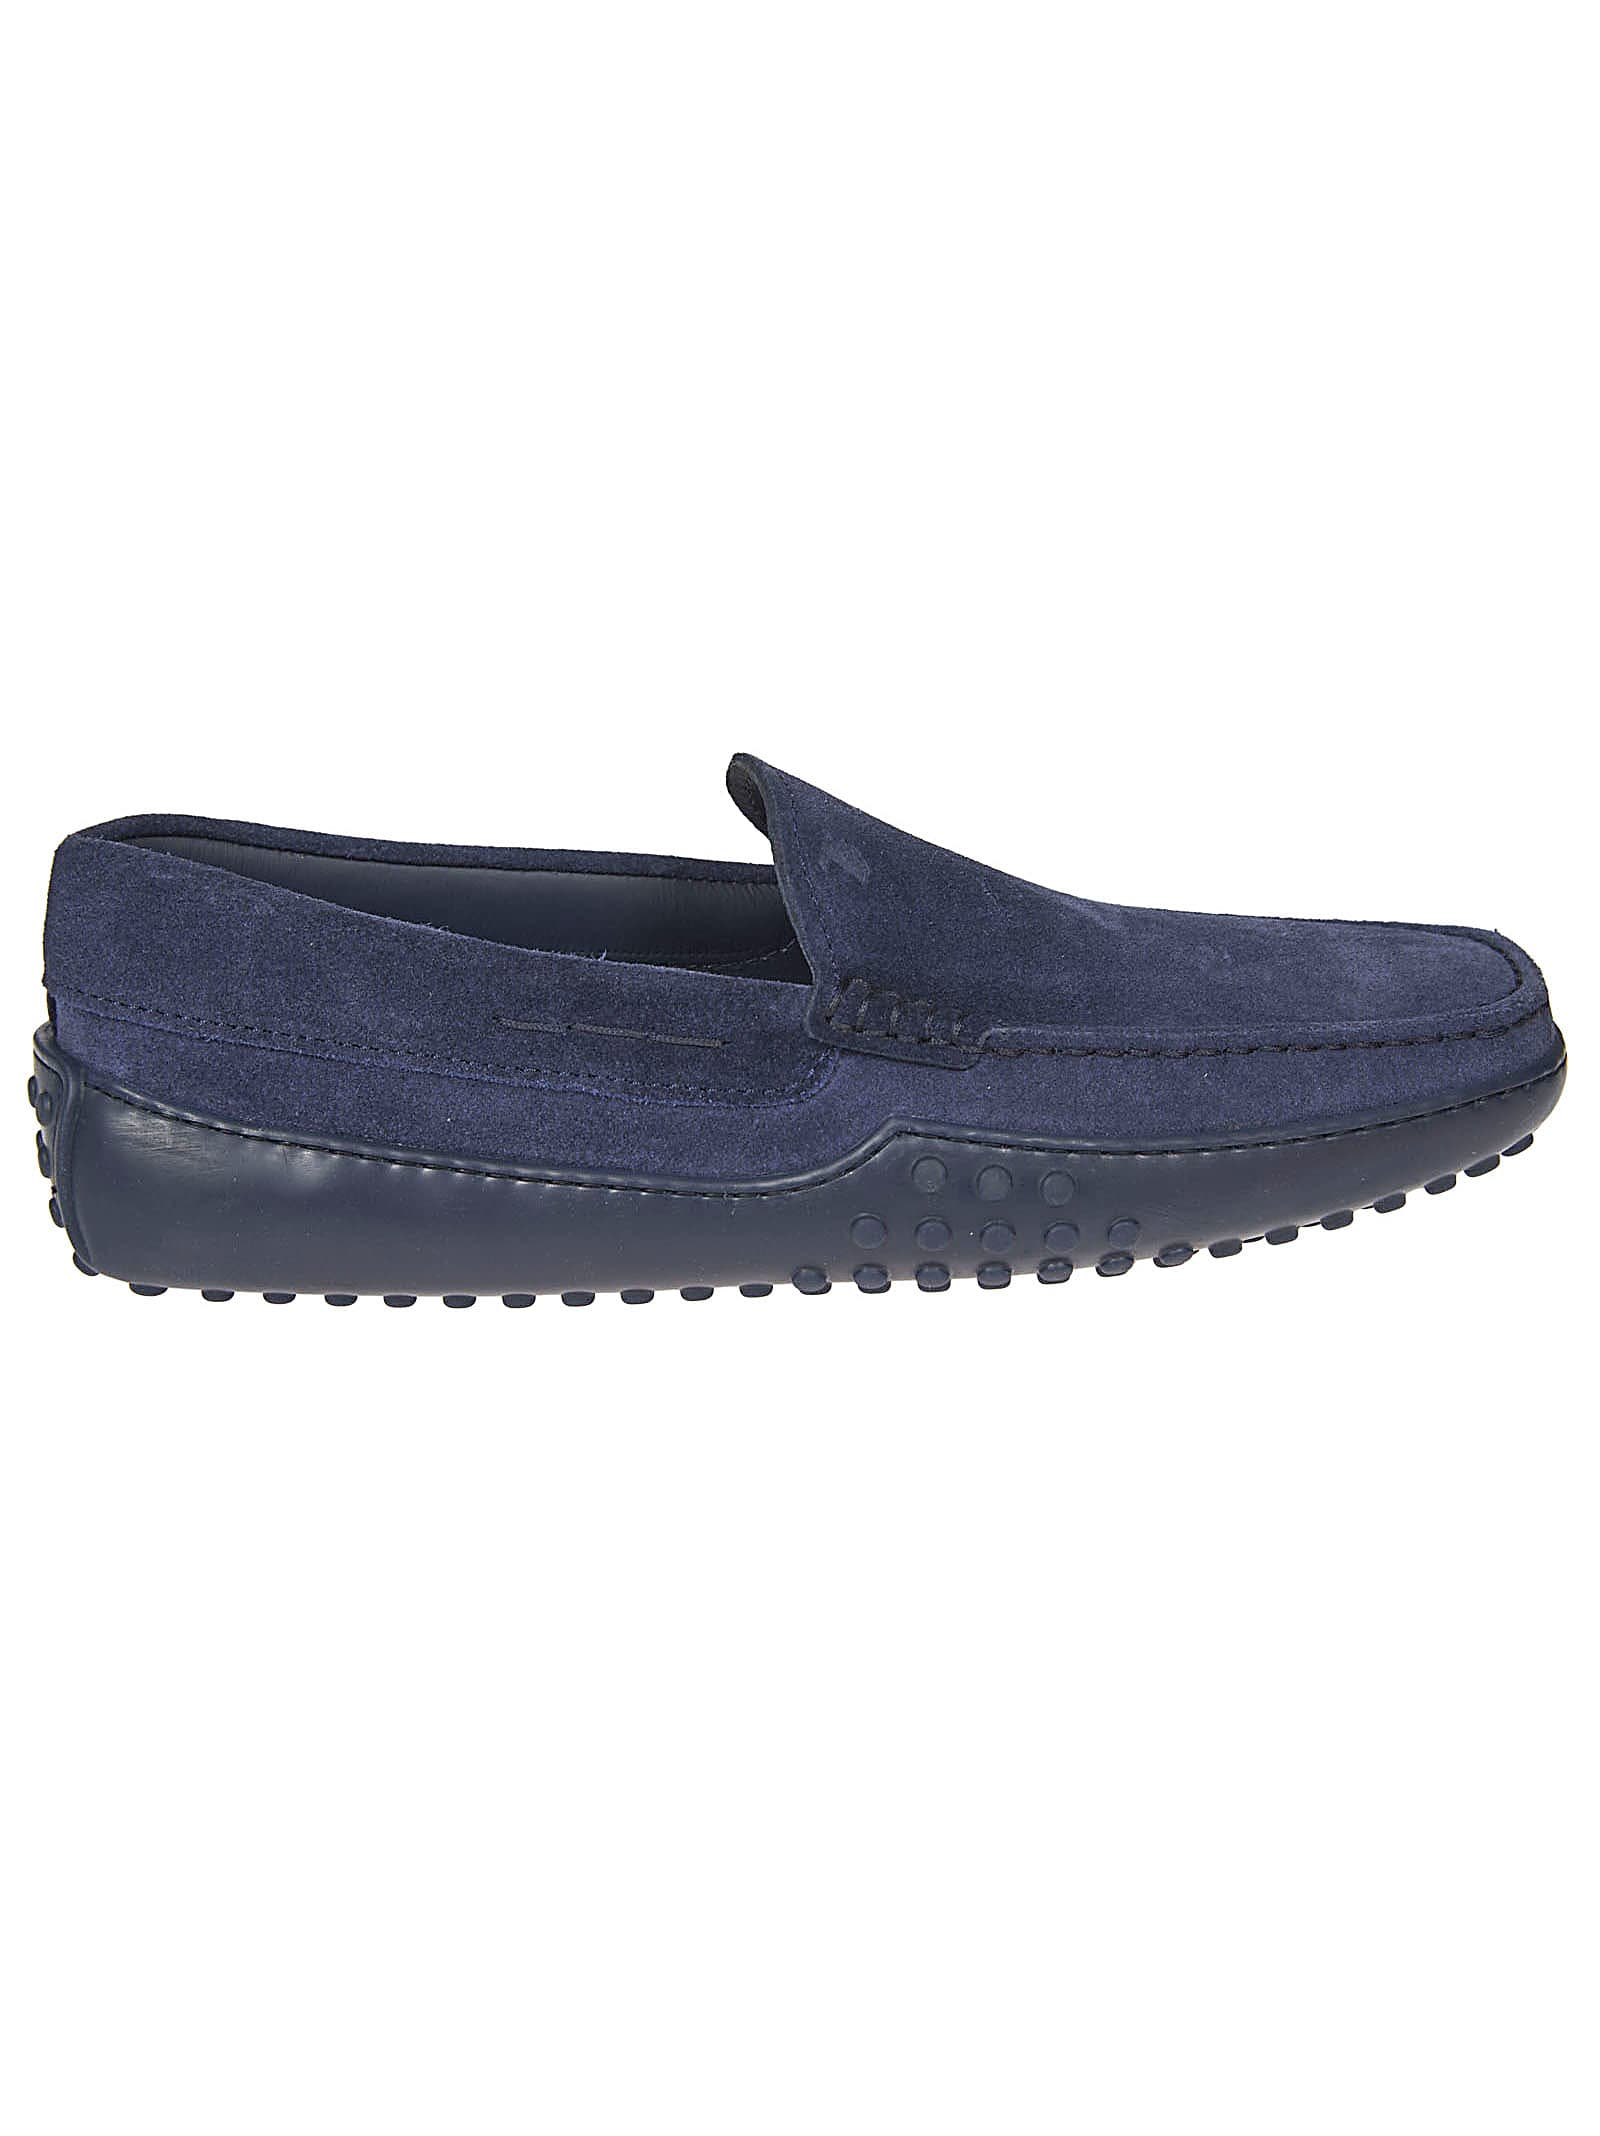 Tods Classic Slip-on Loafers